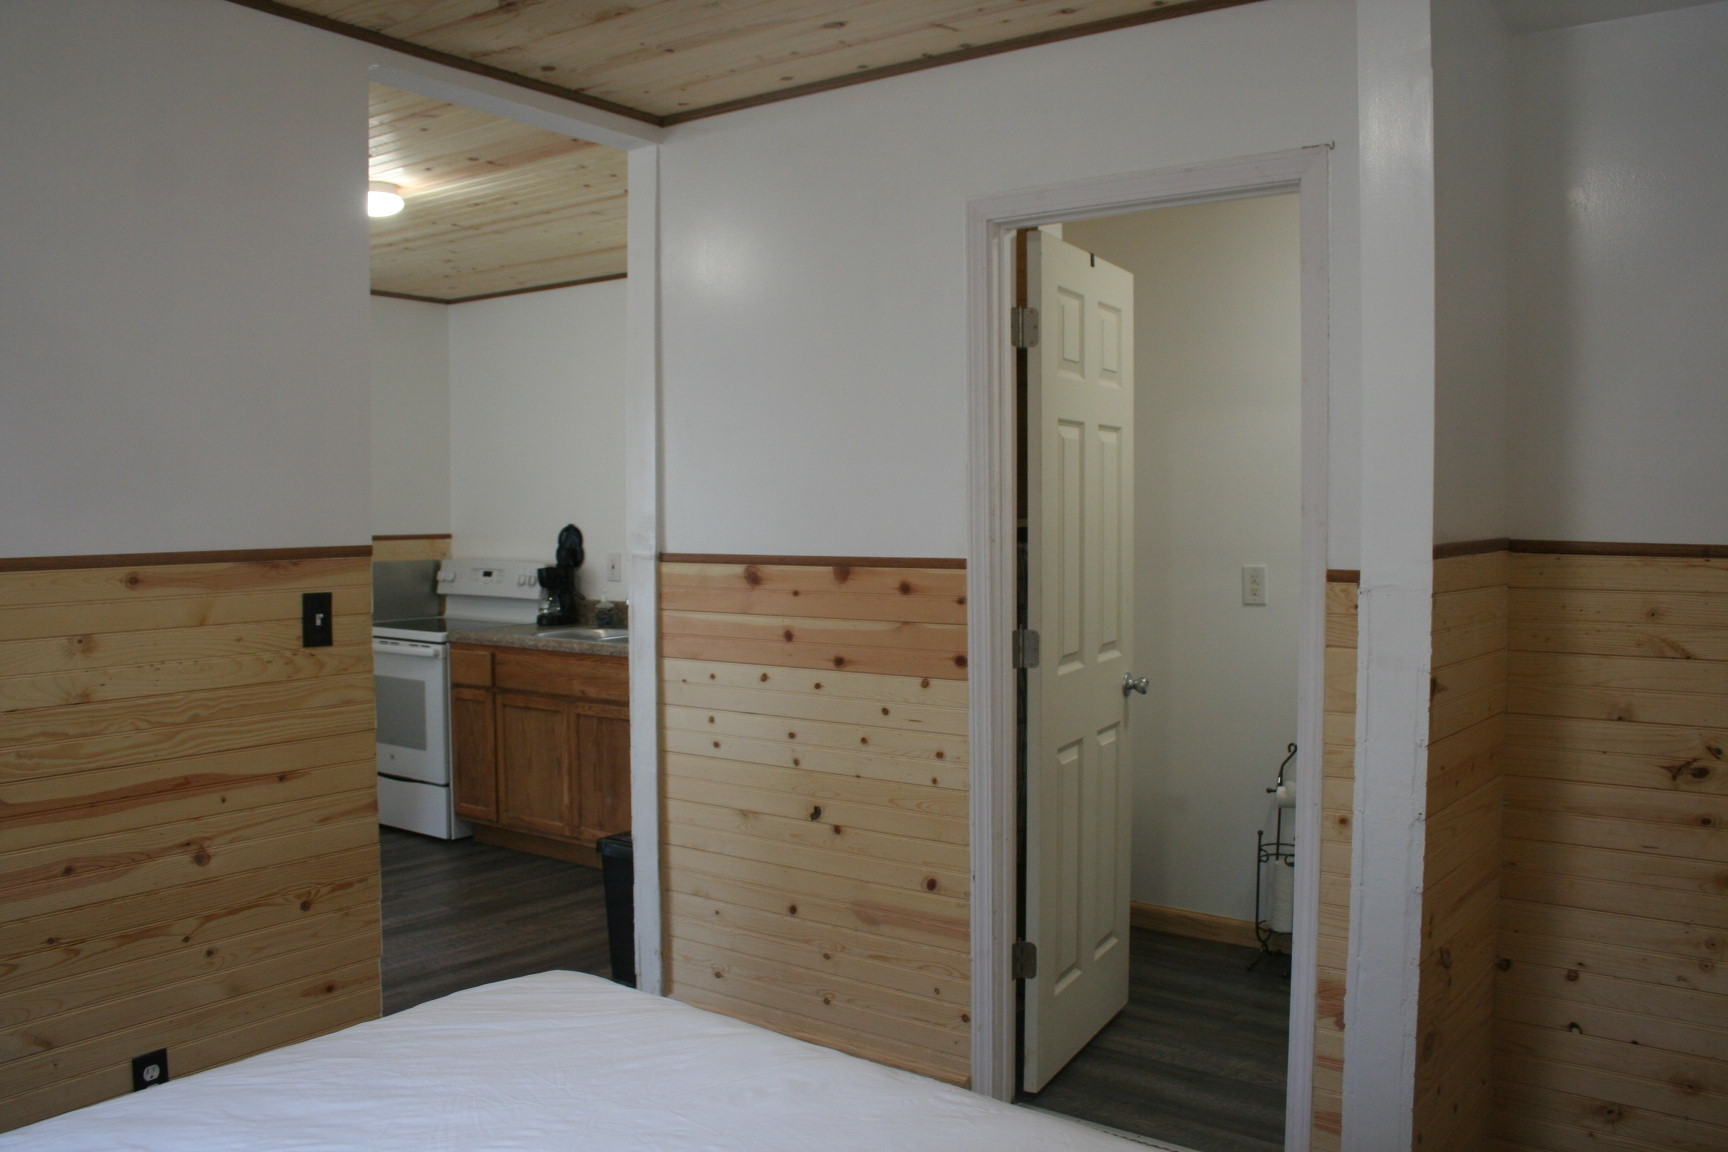 Bedroom looking into bath and kitchen in Cabin #2